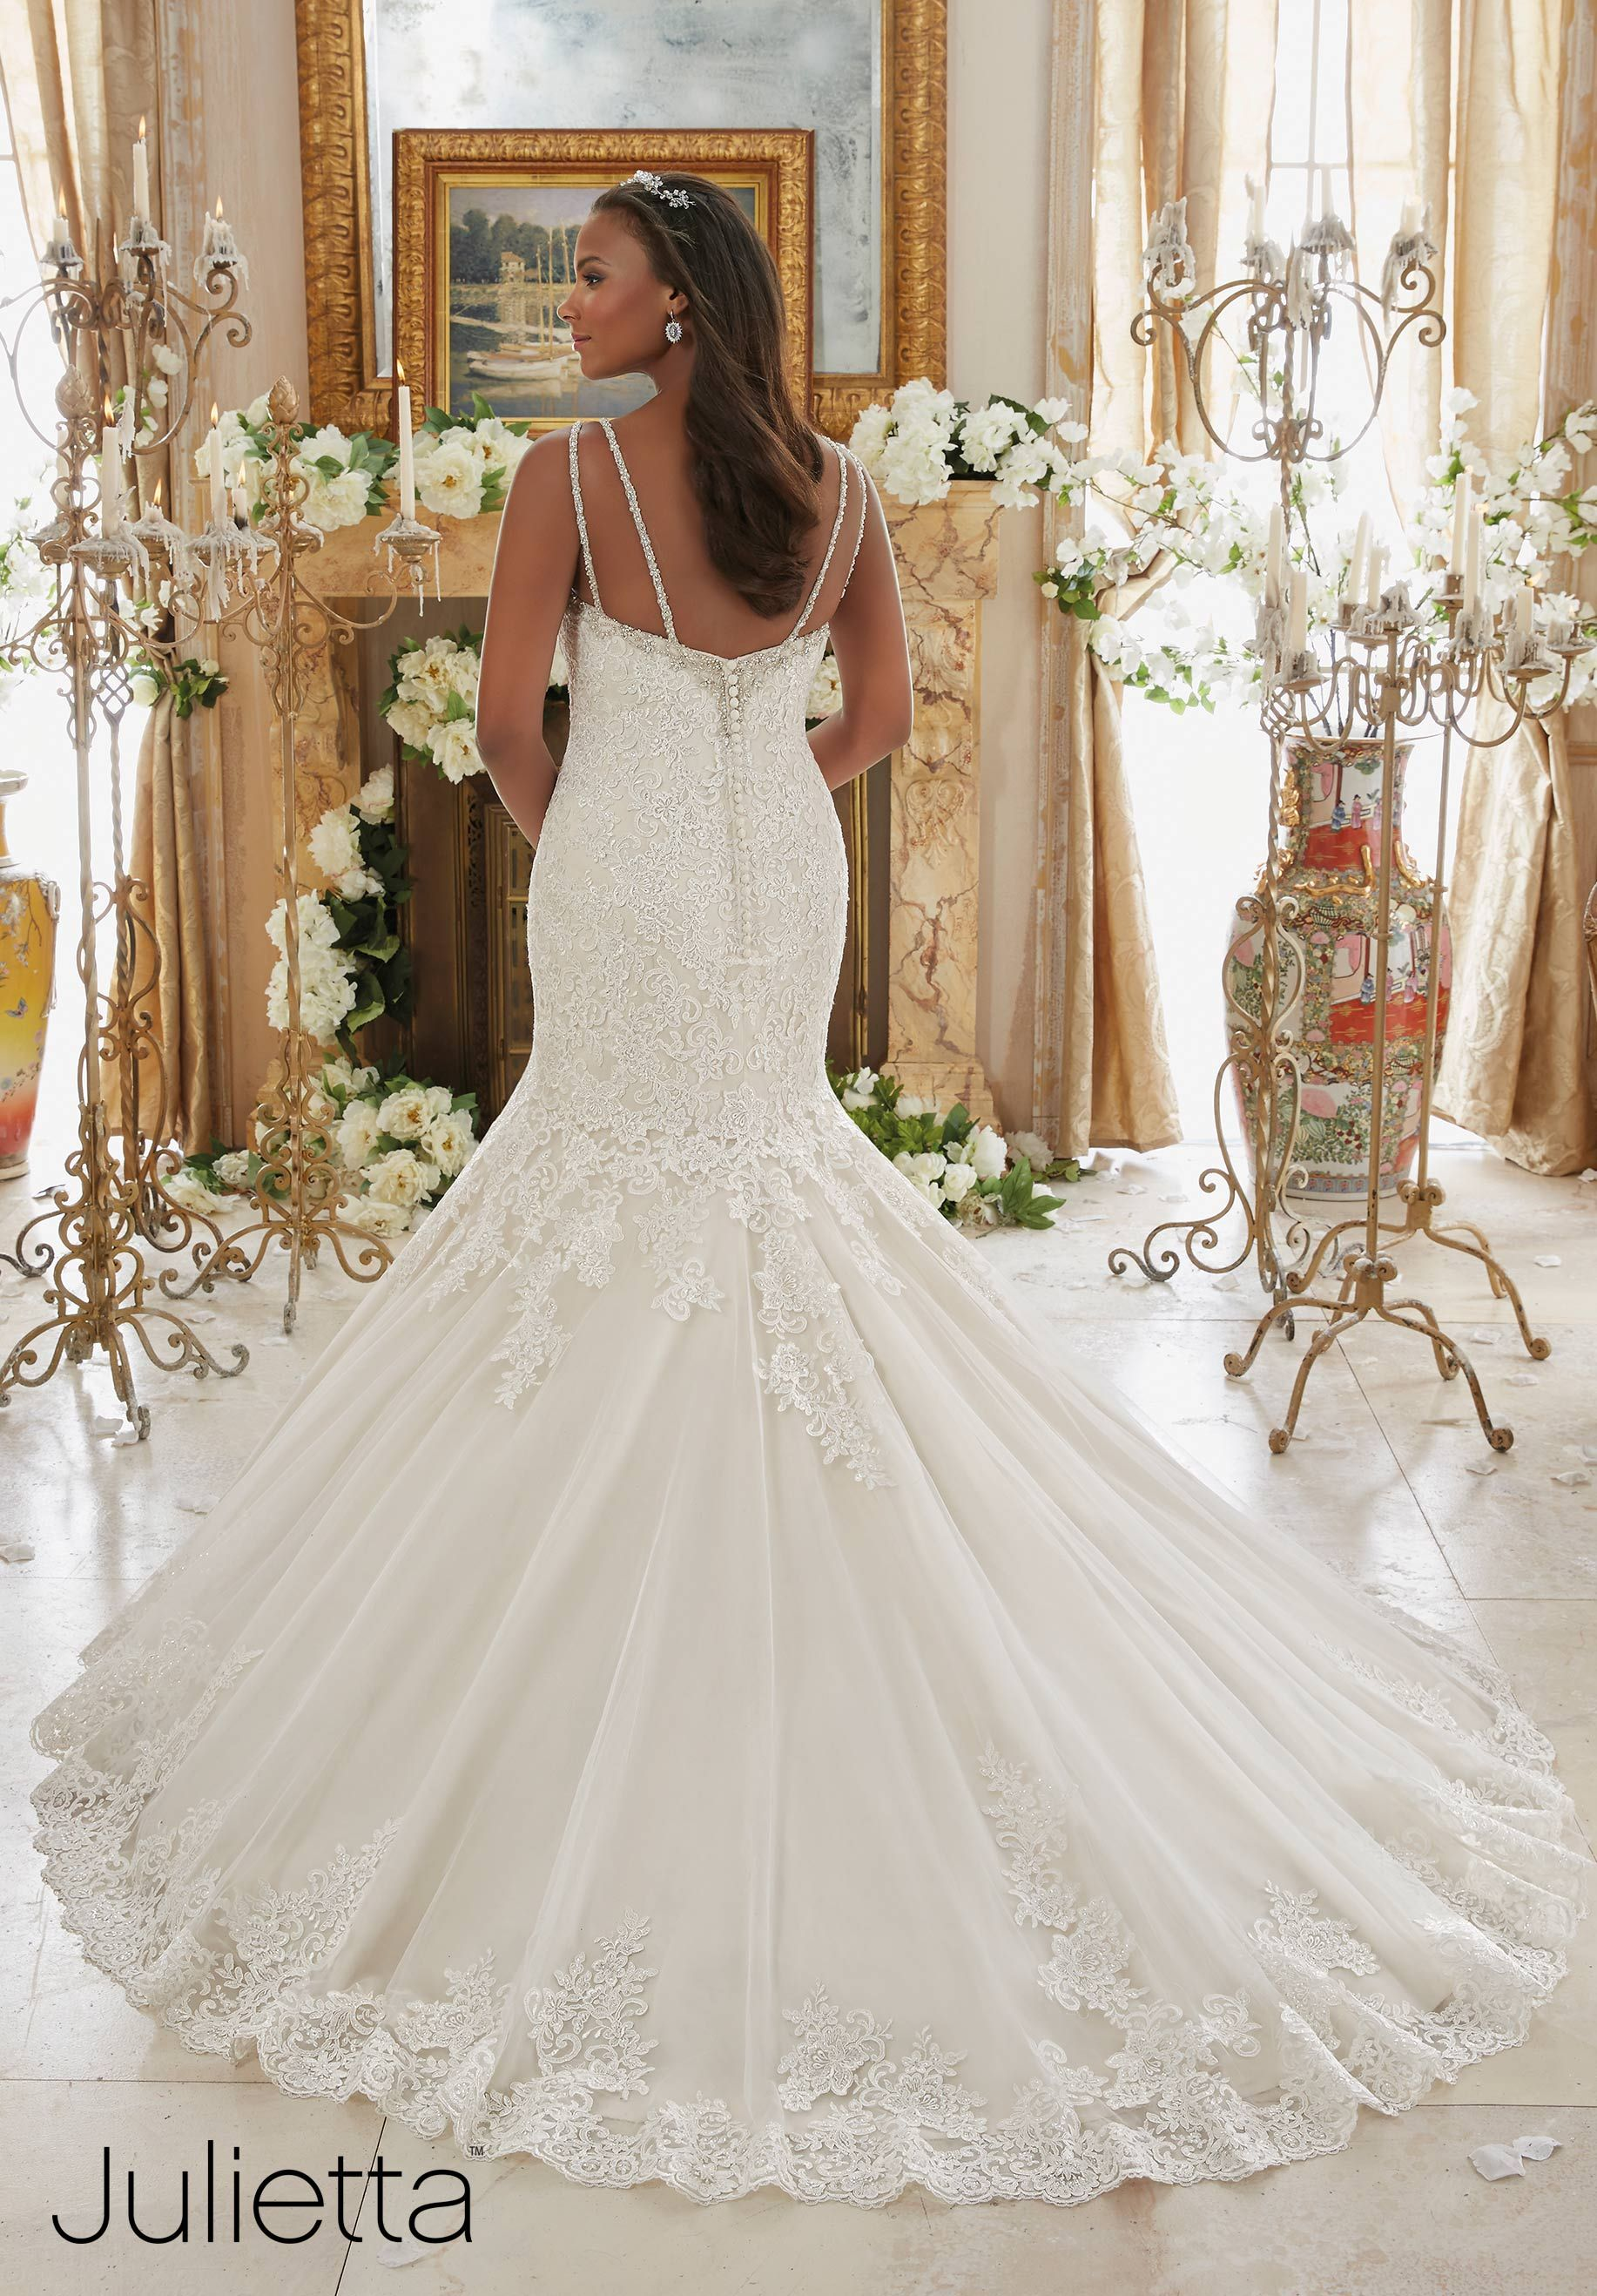 Mermaid plus size wedding dresses  Plus Size Wedding Gowns  Mori Lee  Julietta Collection  Pretty